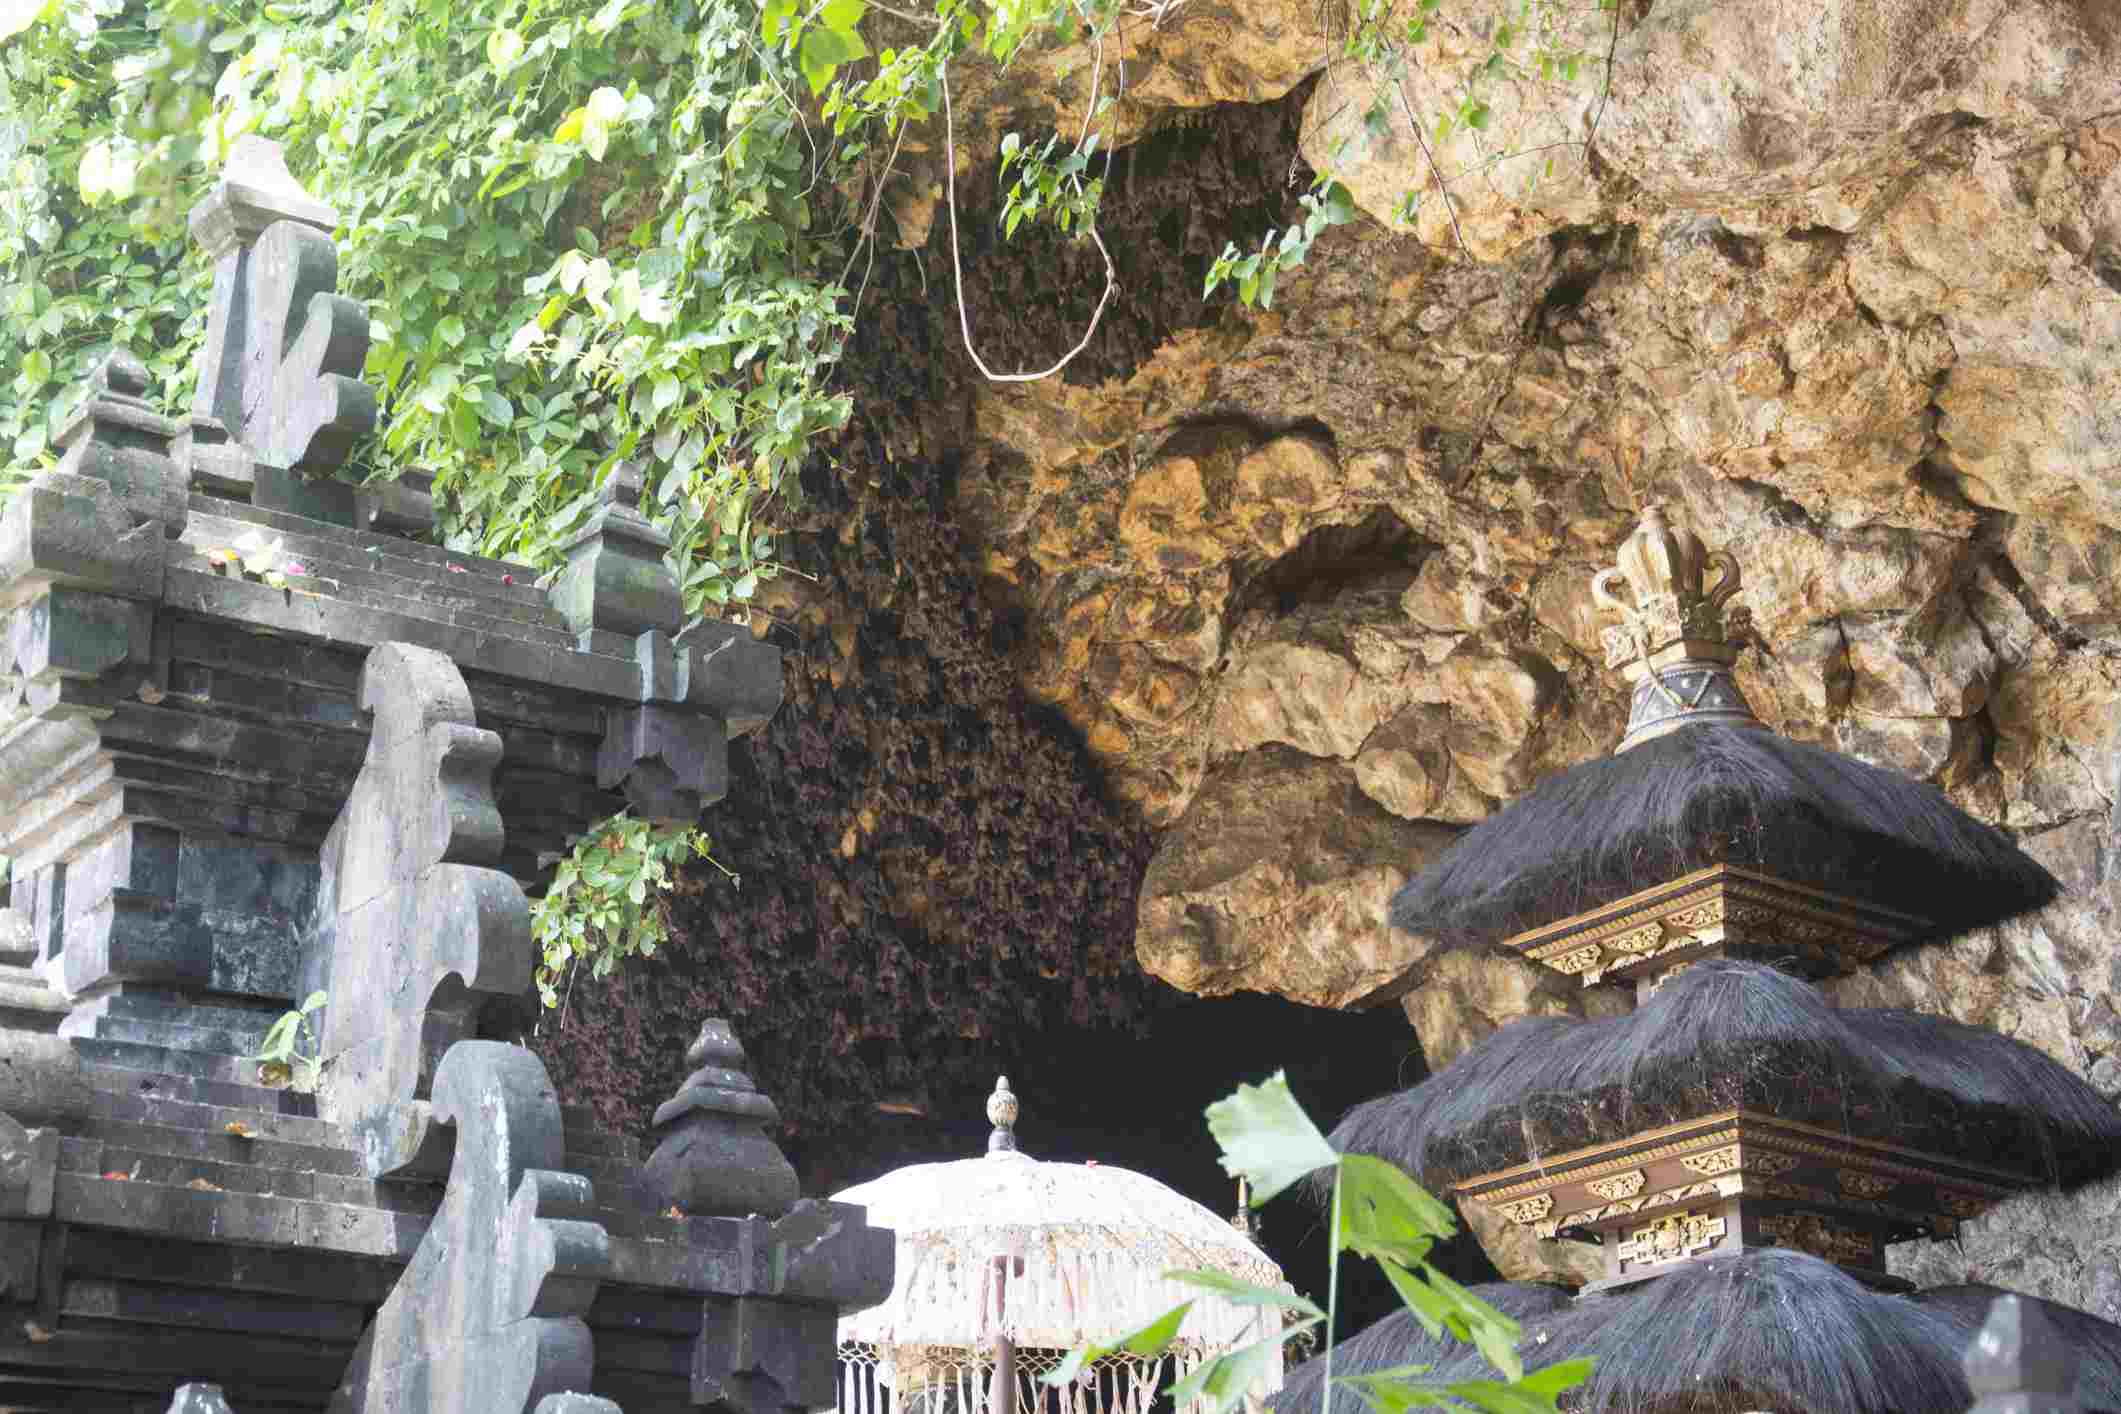 Goa-Lawah Temple in front of a bat cave